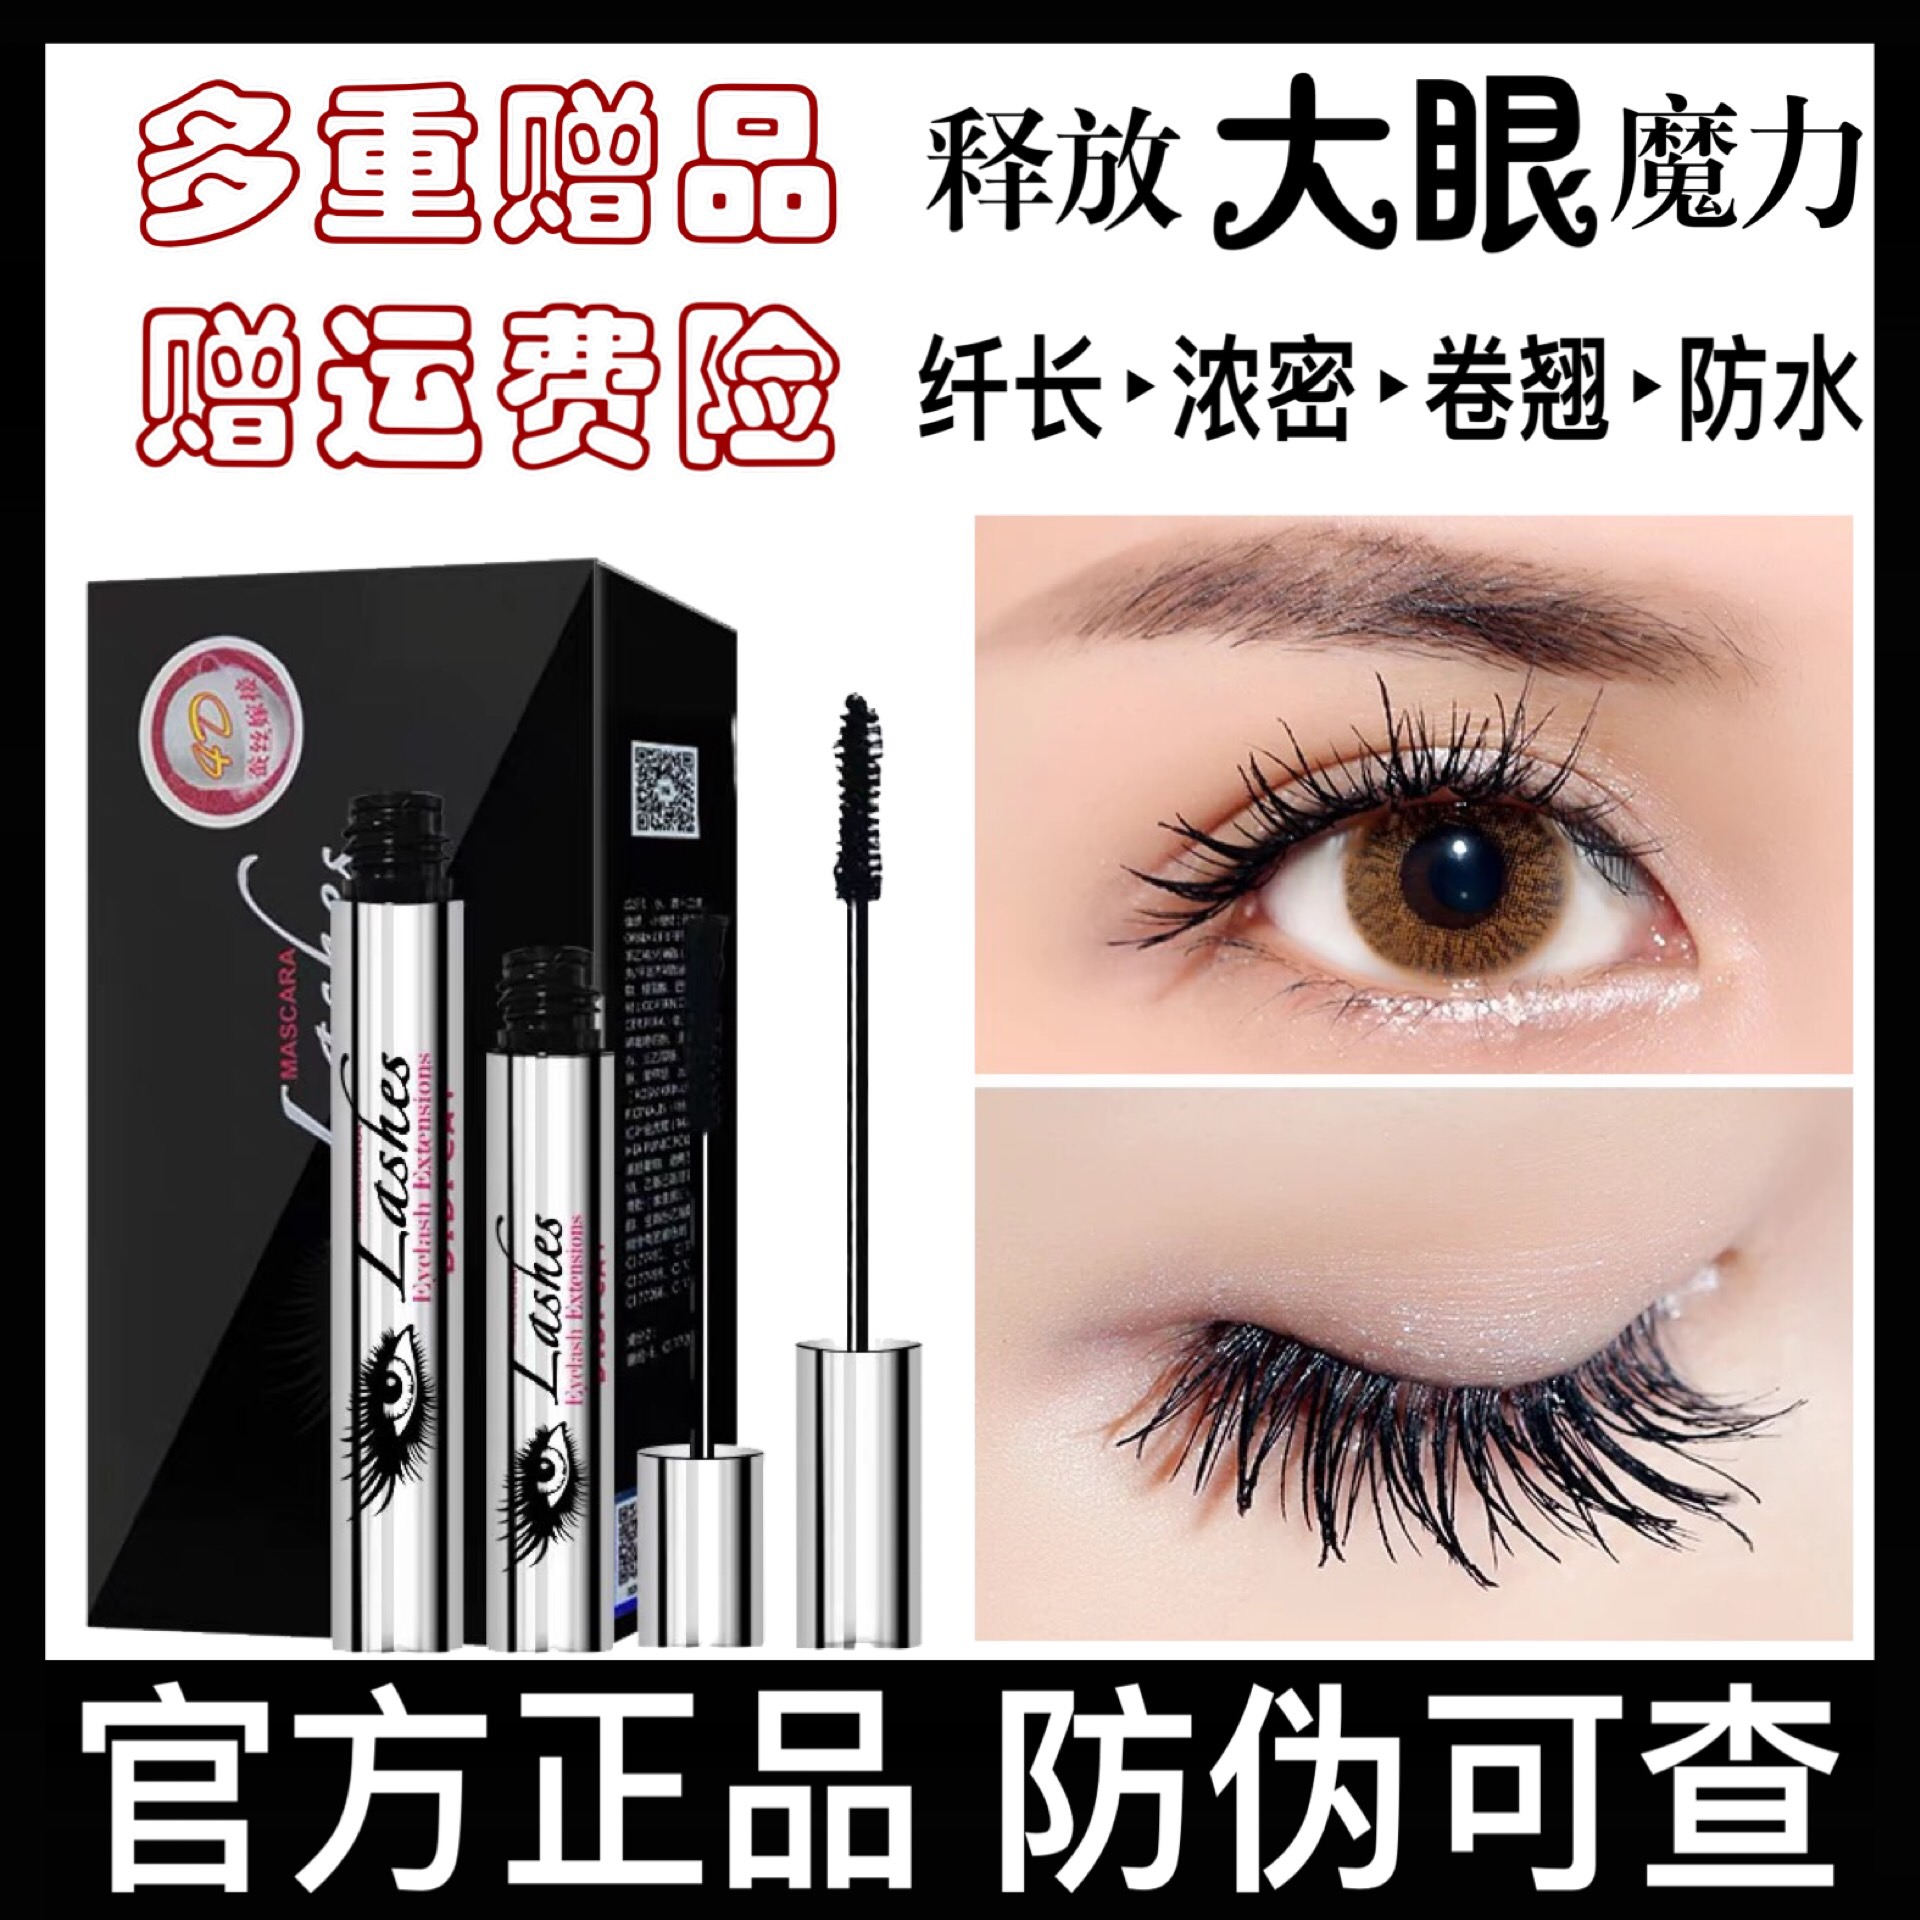 The same official DDK mascara, official agent, tiktok, the long, curling, waterproof, and sweat stained fabric.